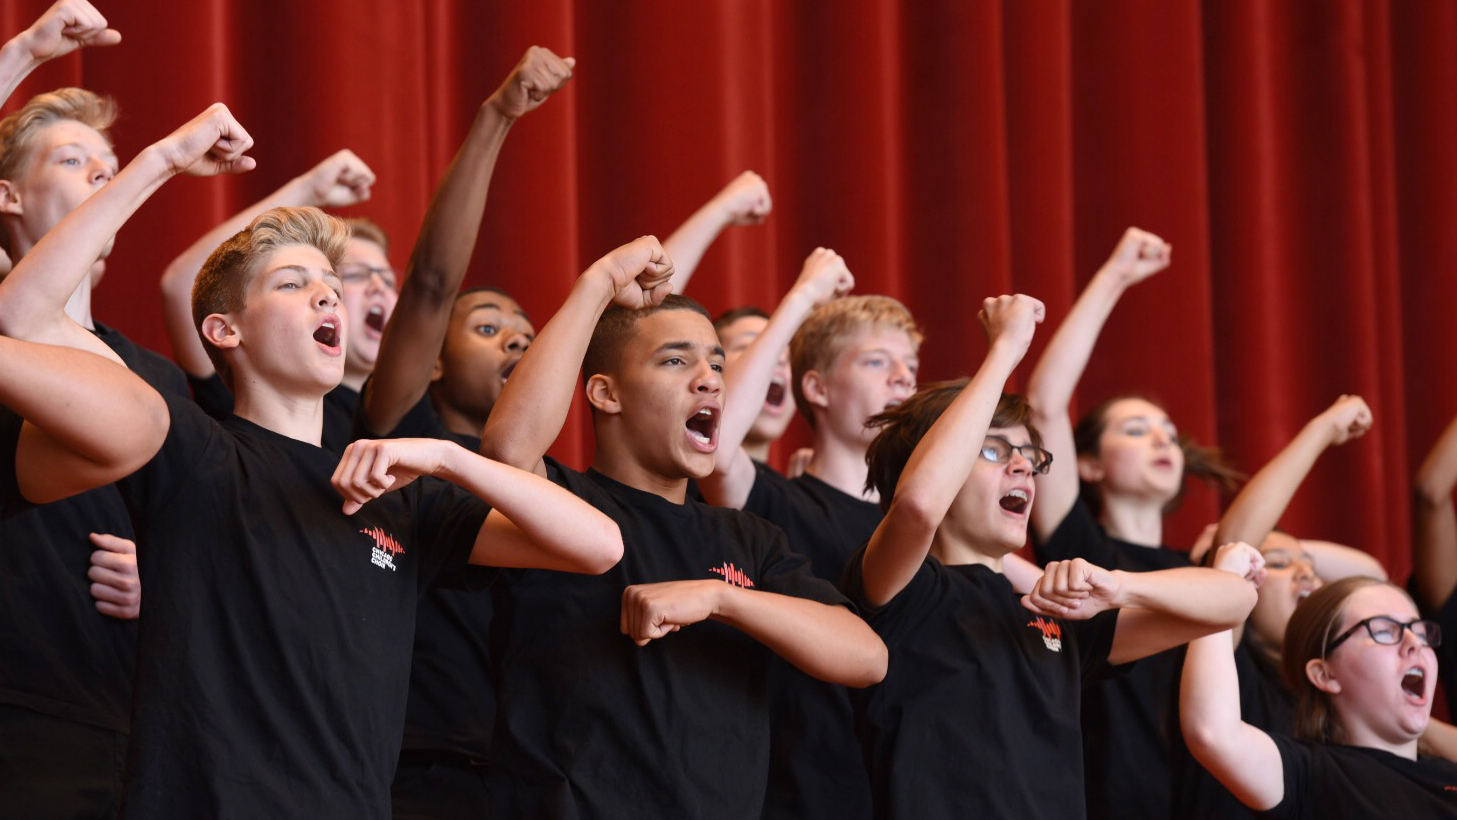 Members of the Chicago Children's Choir perform at the Pritzker Pavilion in Millennium Park (Photo: Tipping Point Photograhy)